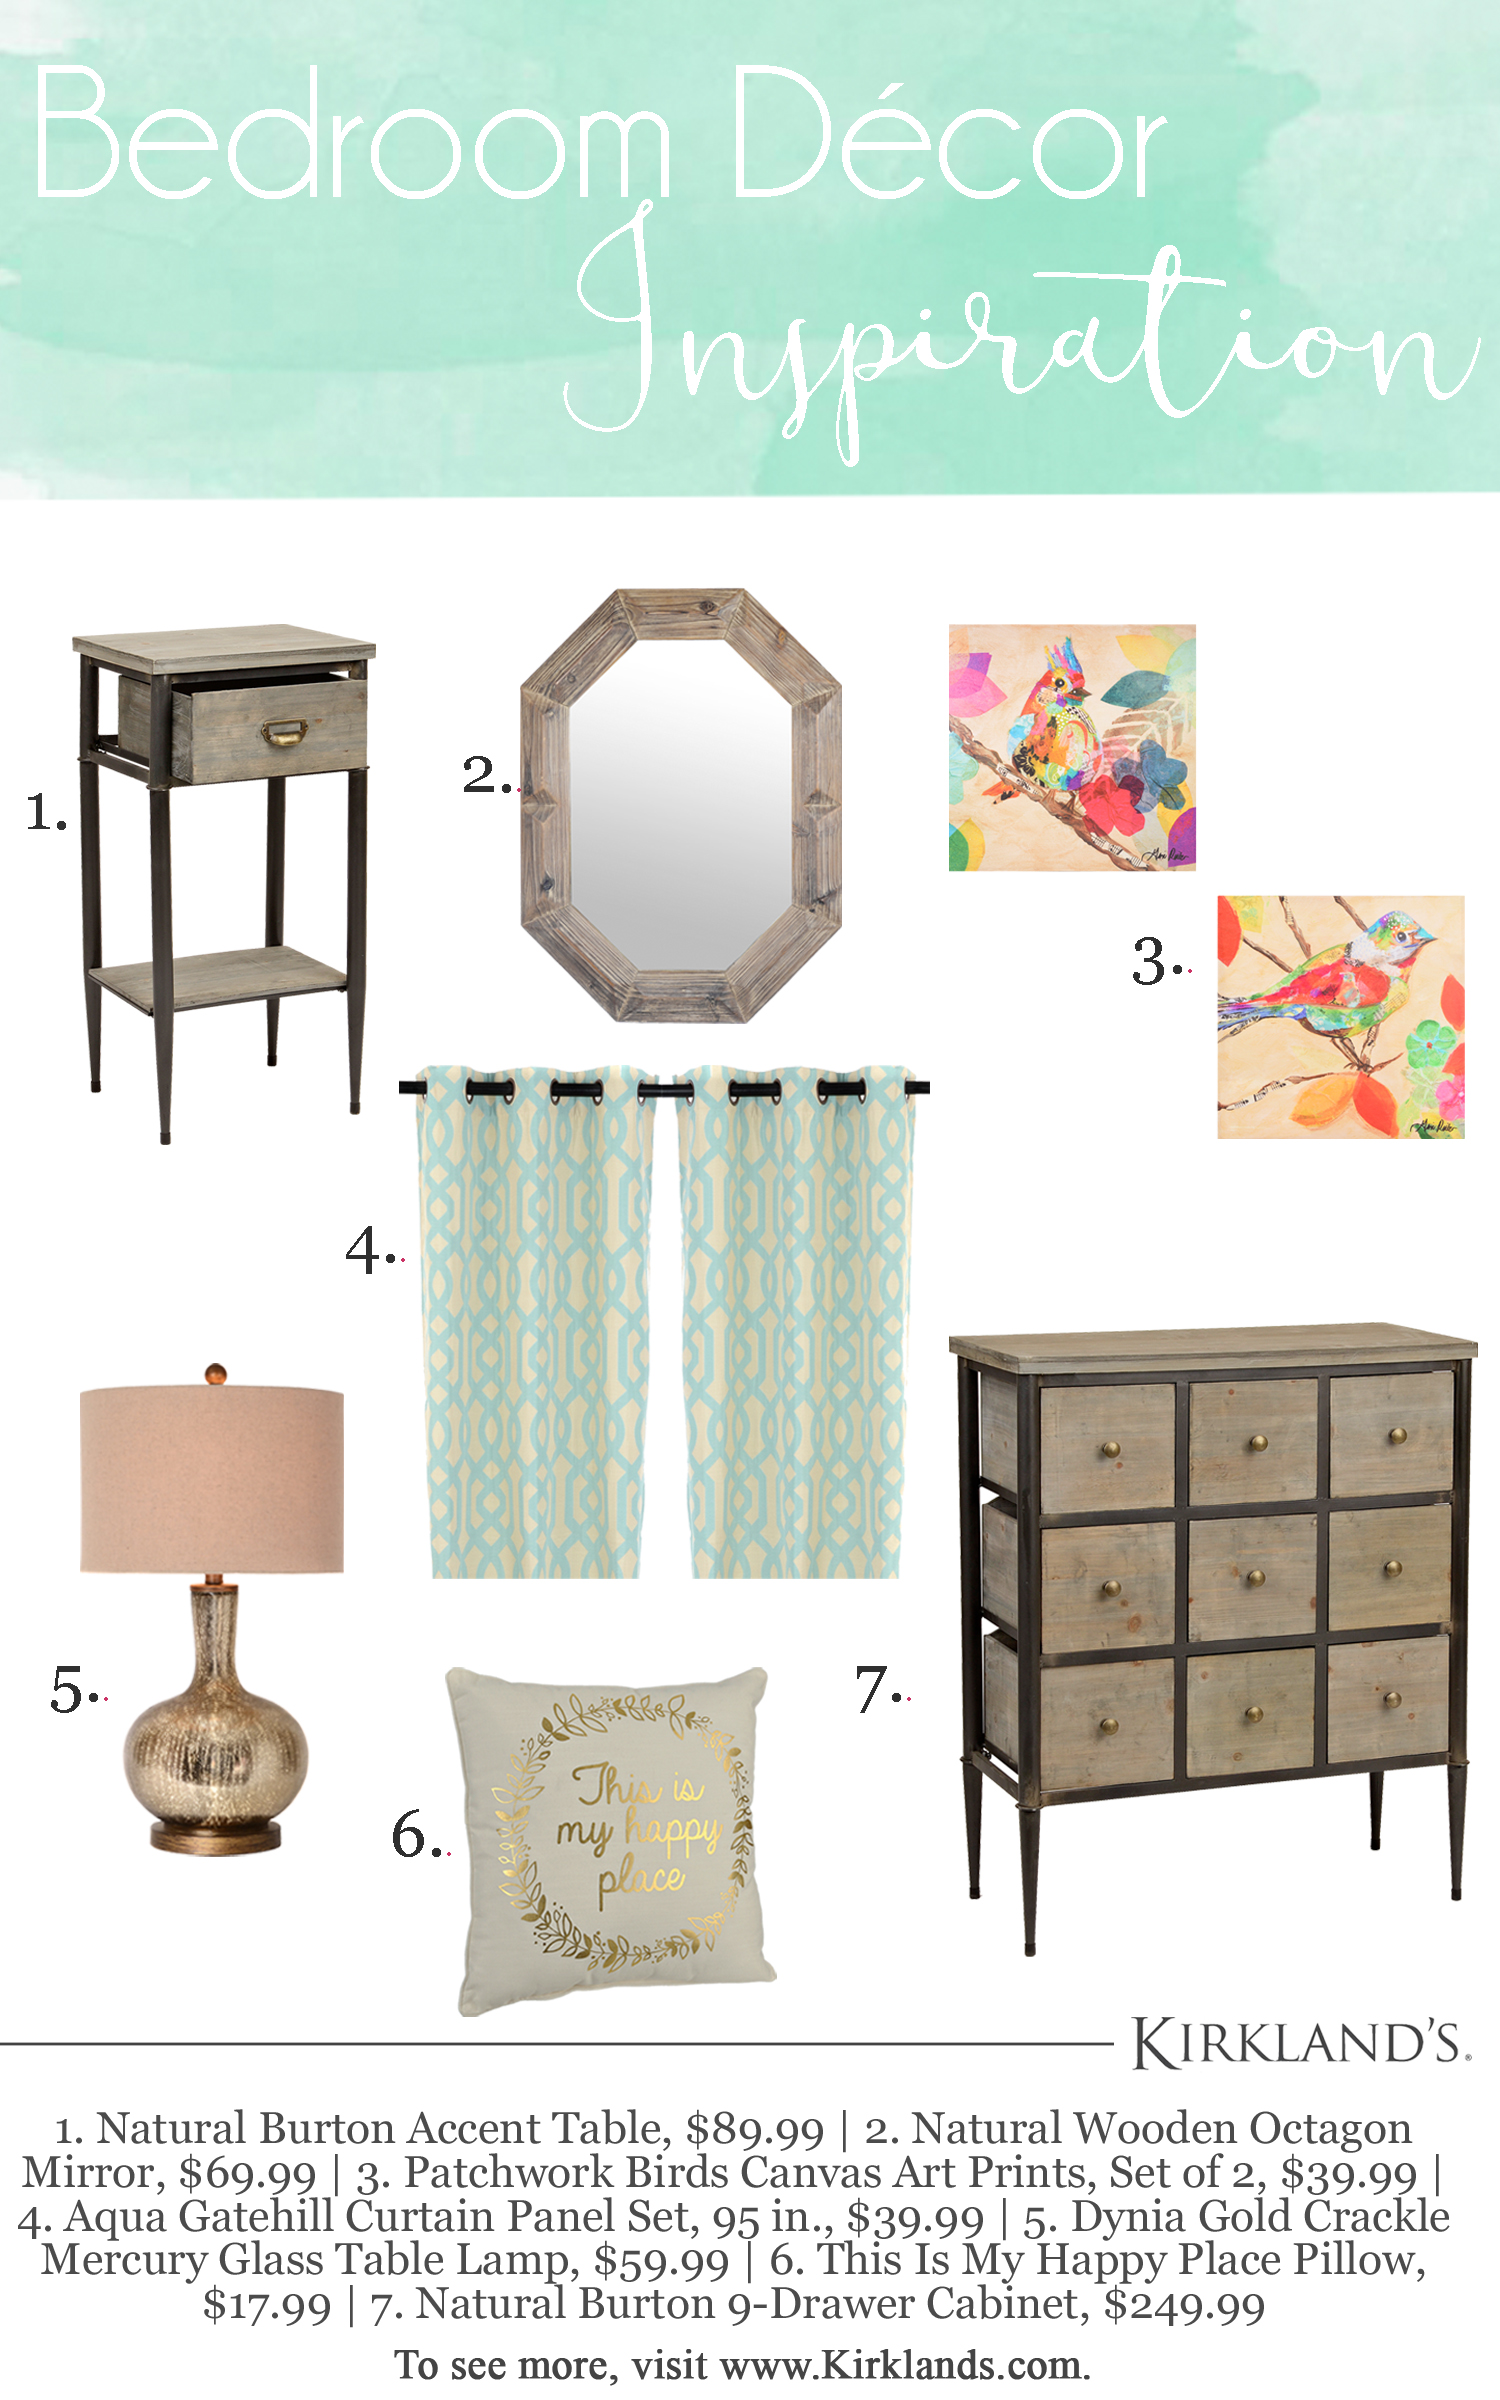 bedroom style ping with kirkland loving here blog kirklands accent tables side table between two chairs nesting end ethan allen outdoor bar cover diamond mirrored oversized